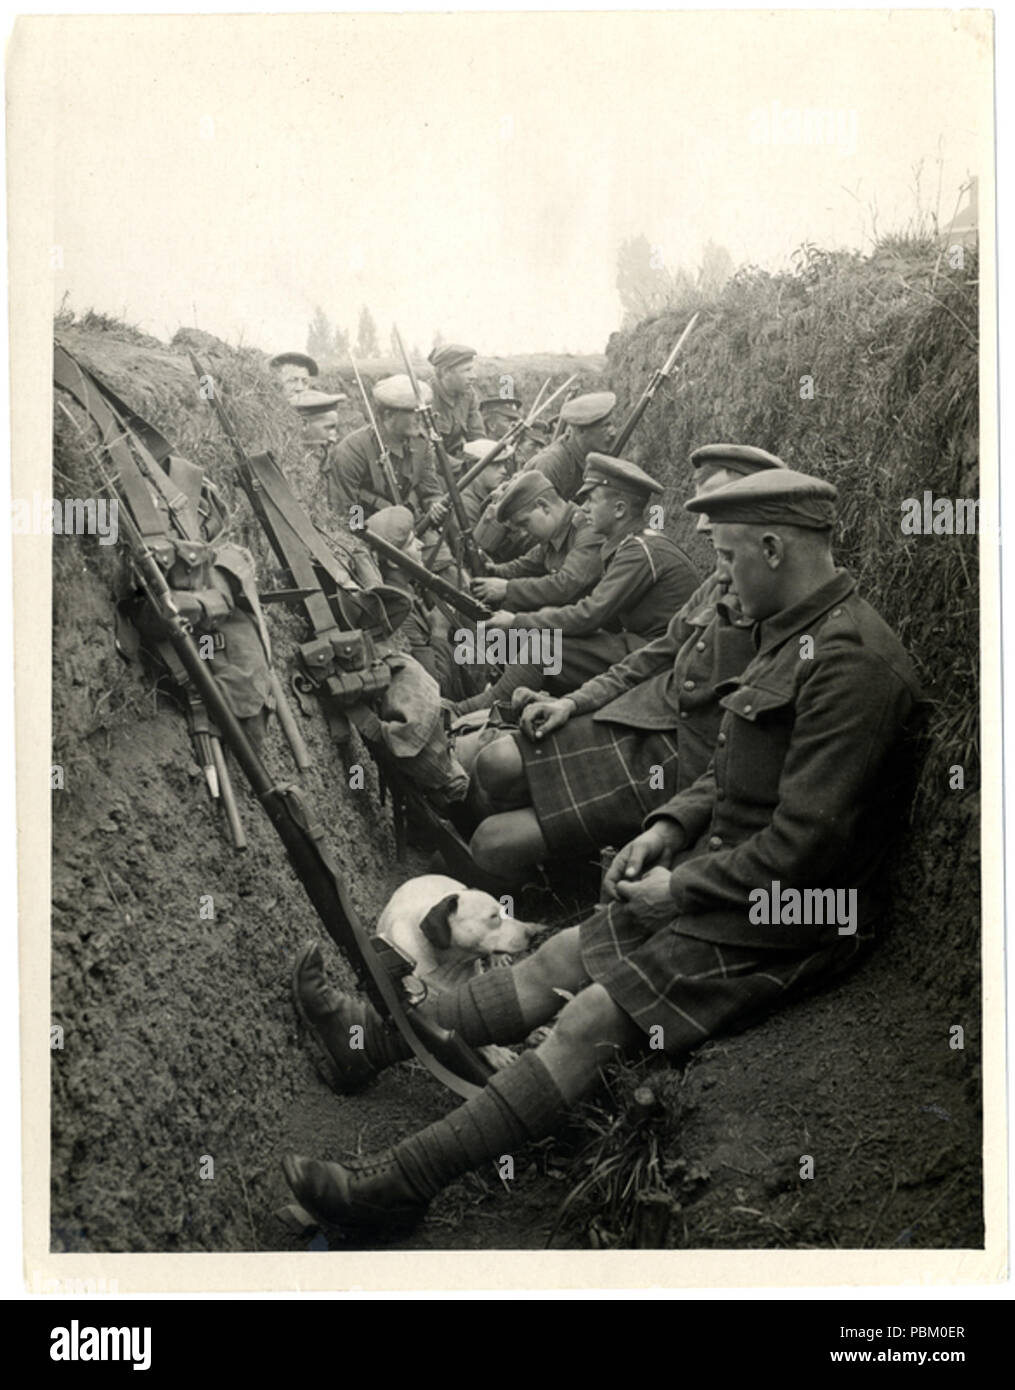 759 Highland Territorials in a trench (Photo 24-248) - Stock Image